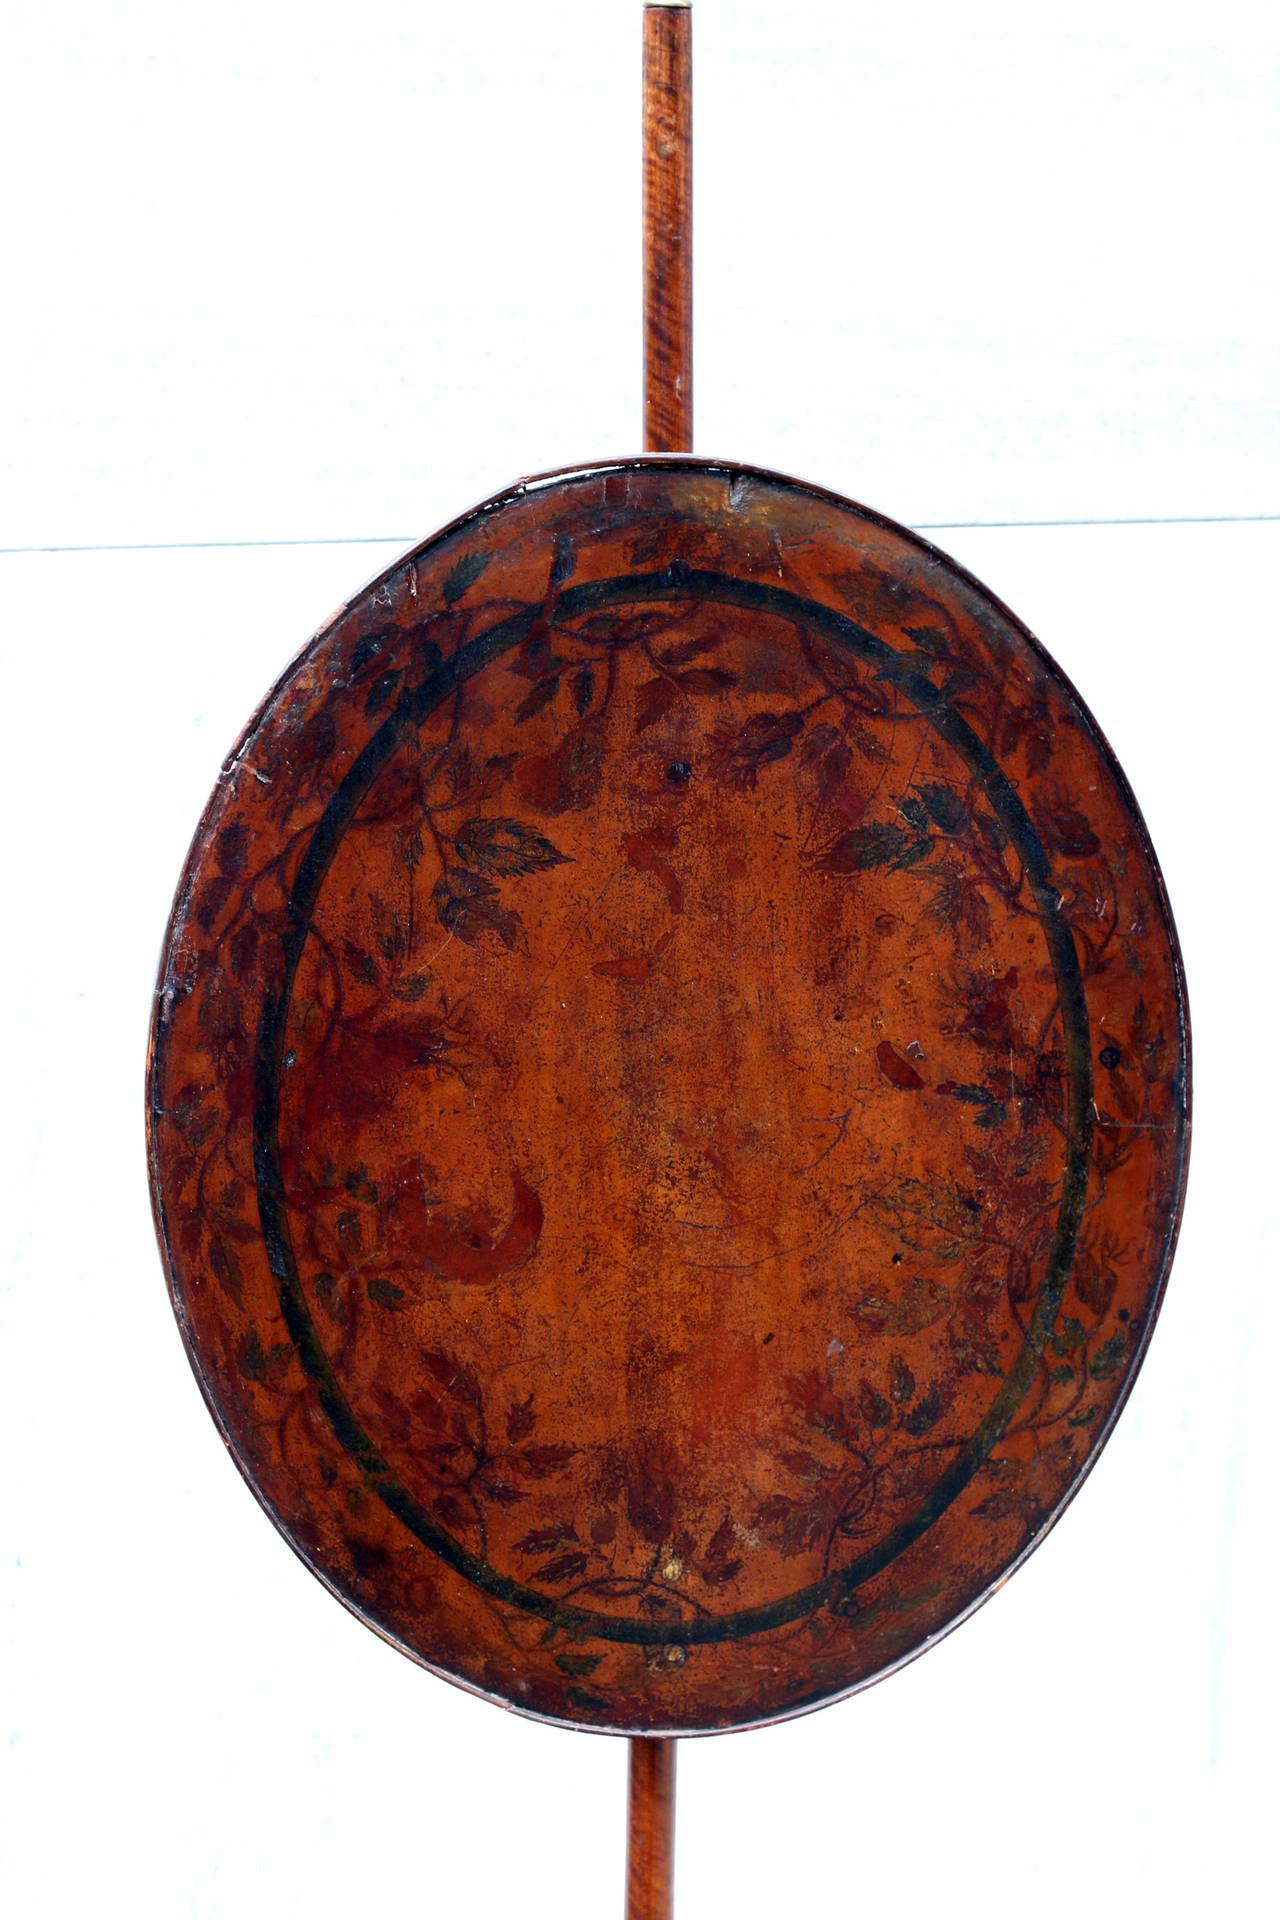 Mahogany and maple pole screen on a tripod base featuring a center urn, adjustable brass slide and a lead weighted bottom. Stenciled floral motif on screen. Exceptional all-original finish, circa 1800. See measurements below.